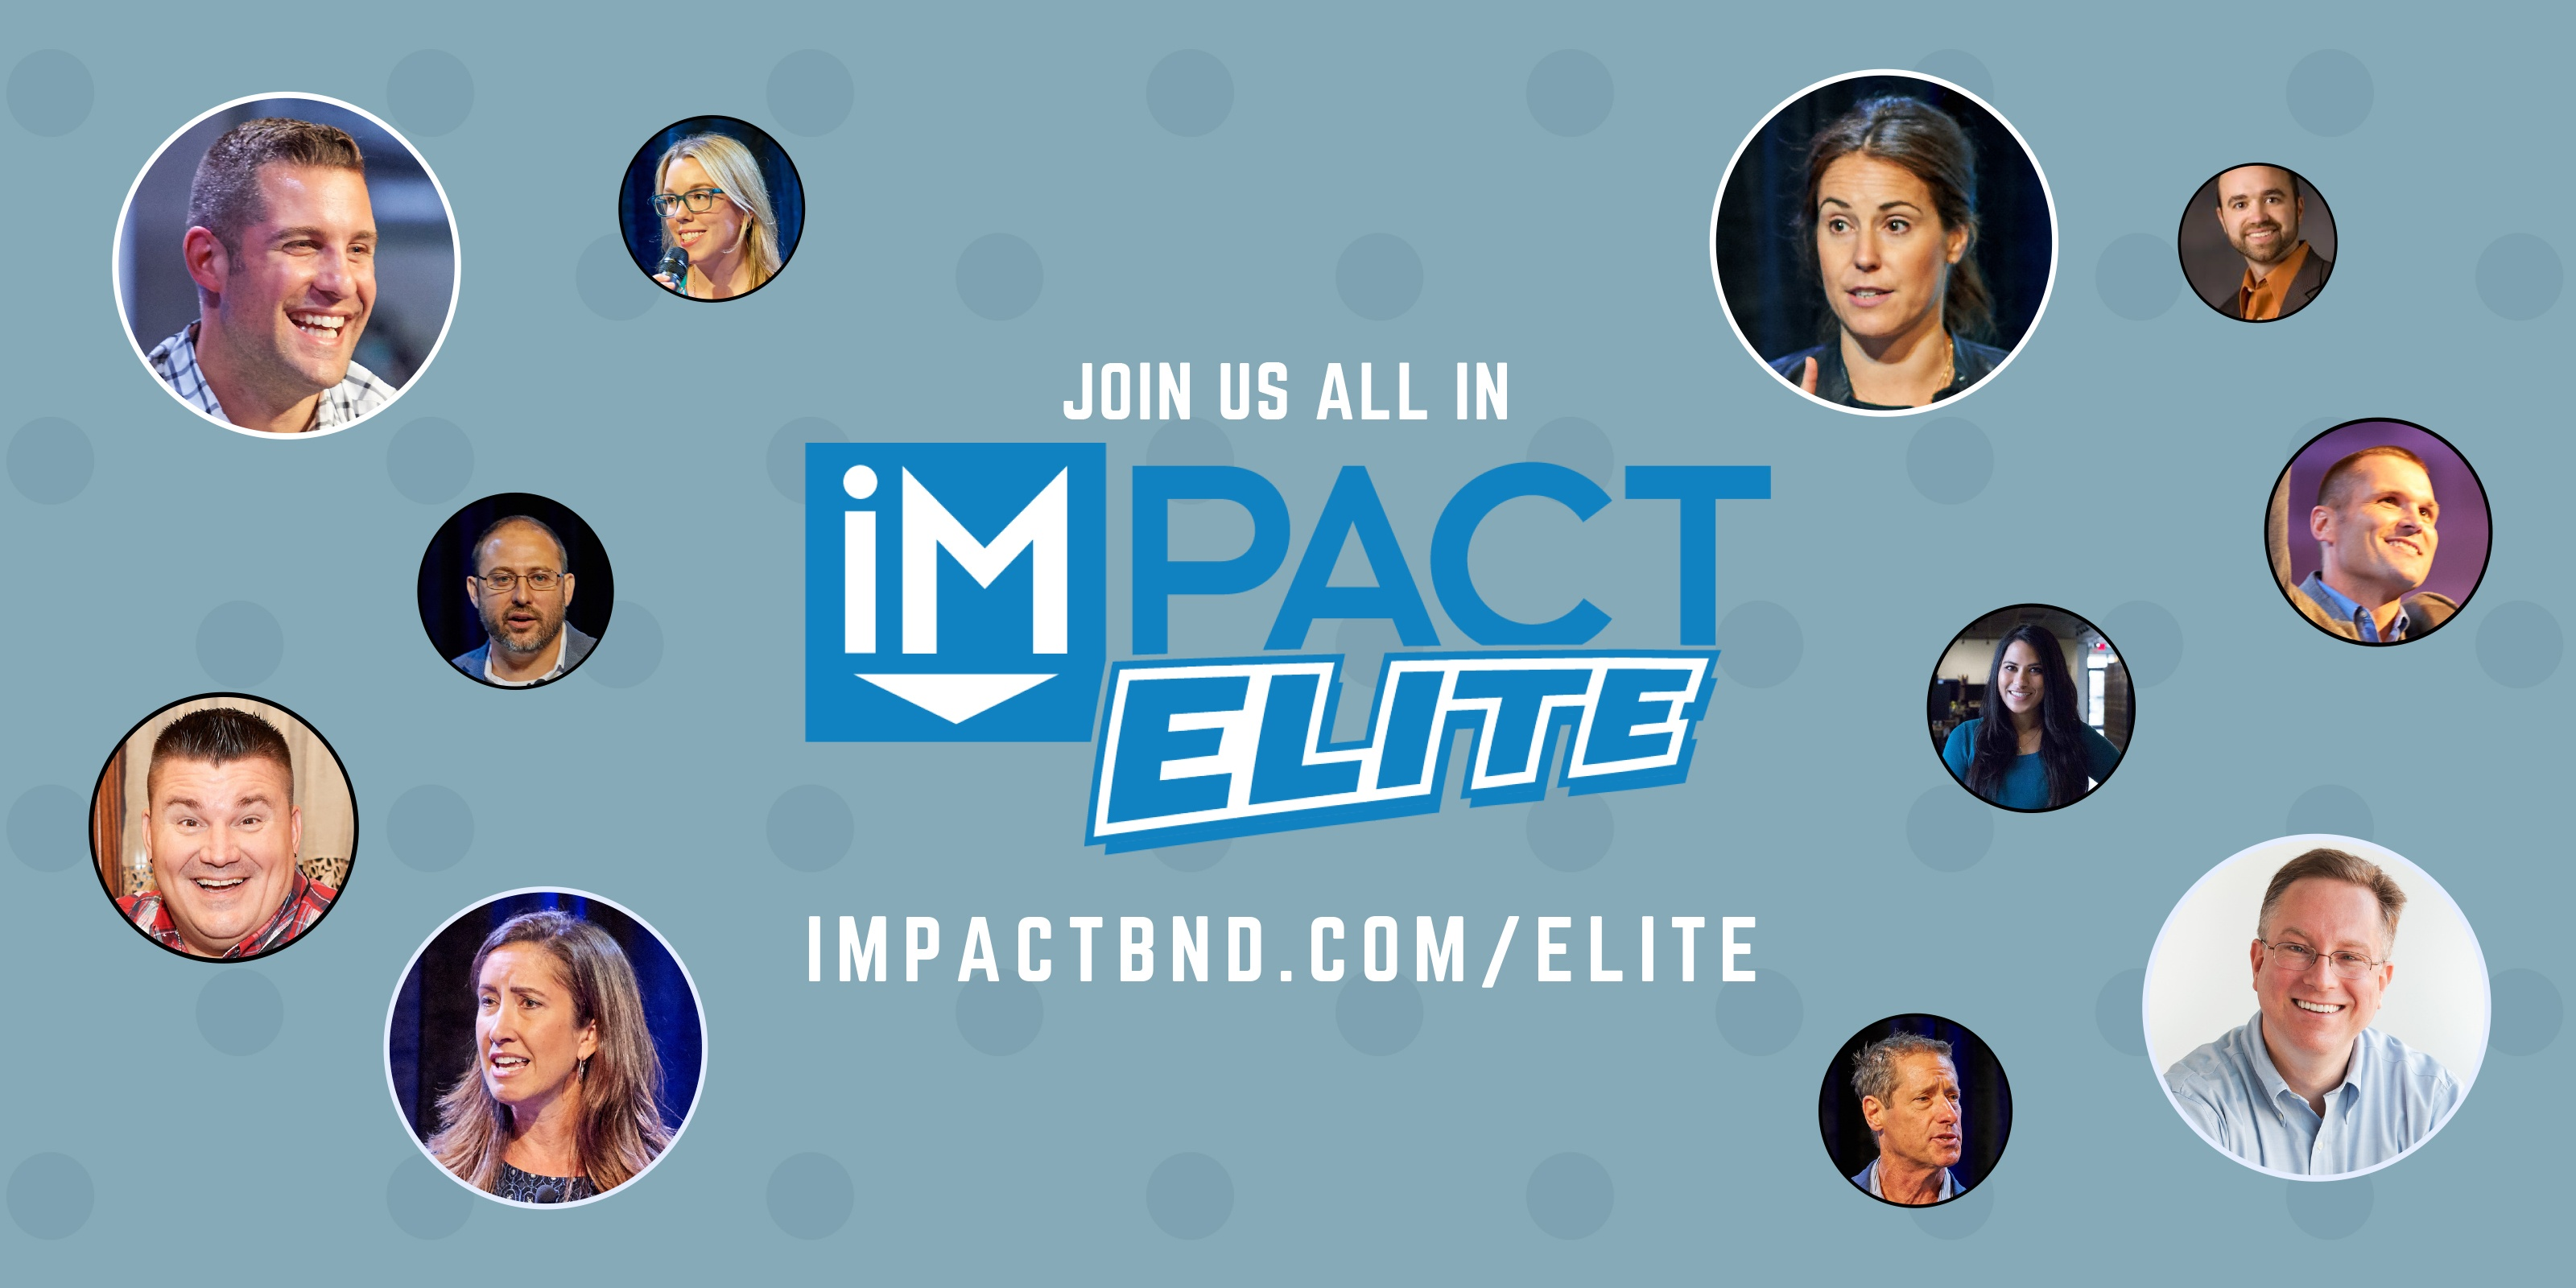 IMPACT Elite: Where The Sharpest Minds in Marketing Are Hanging Out